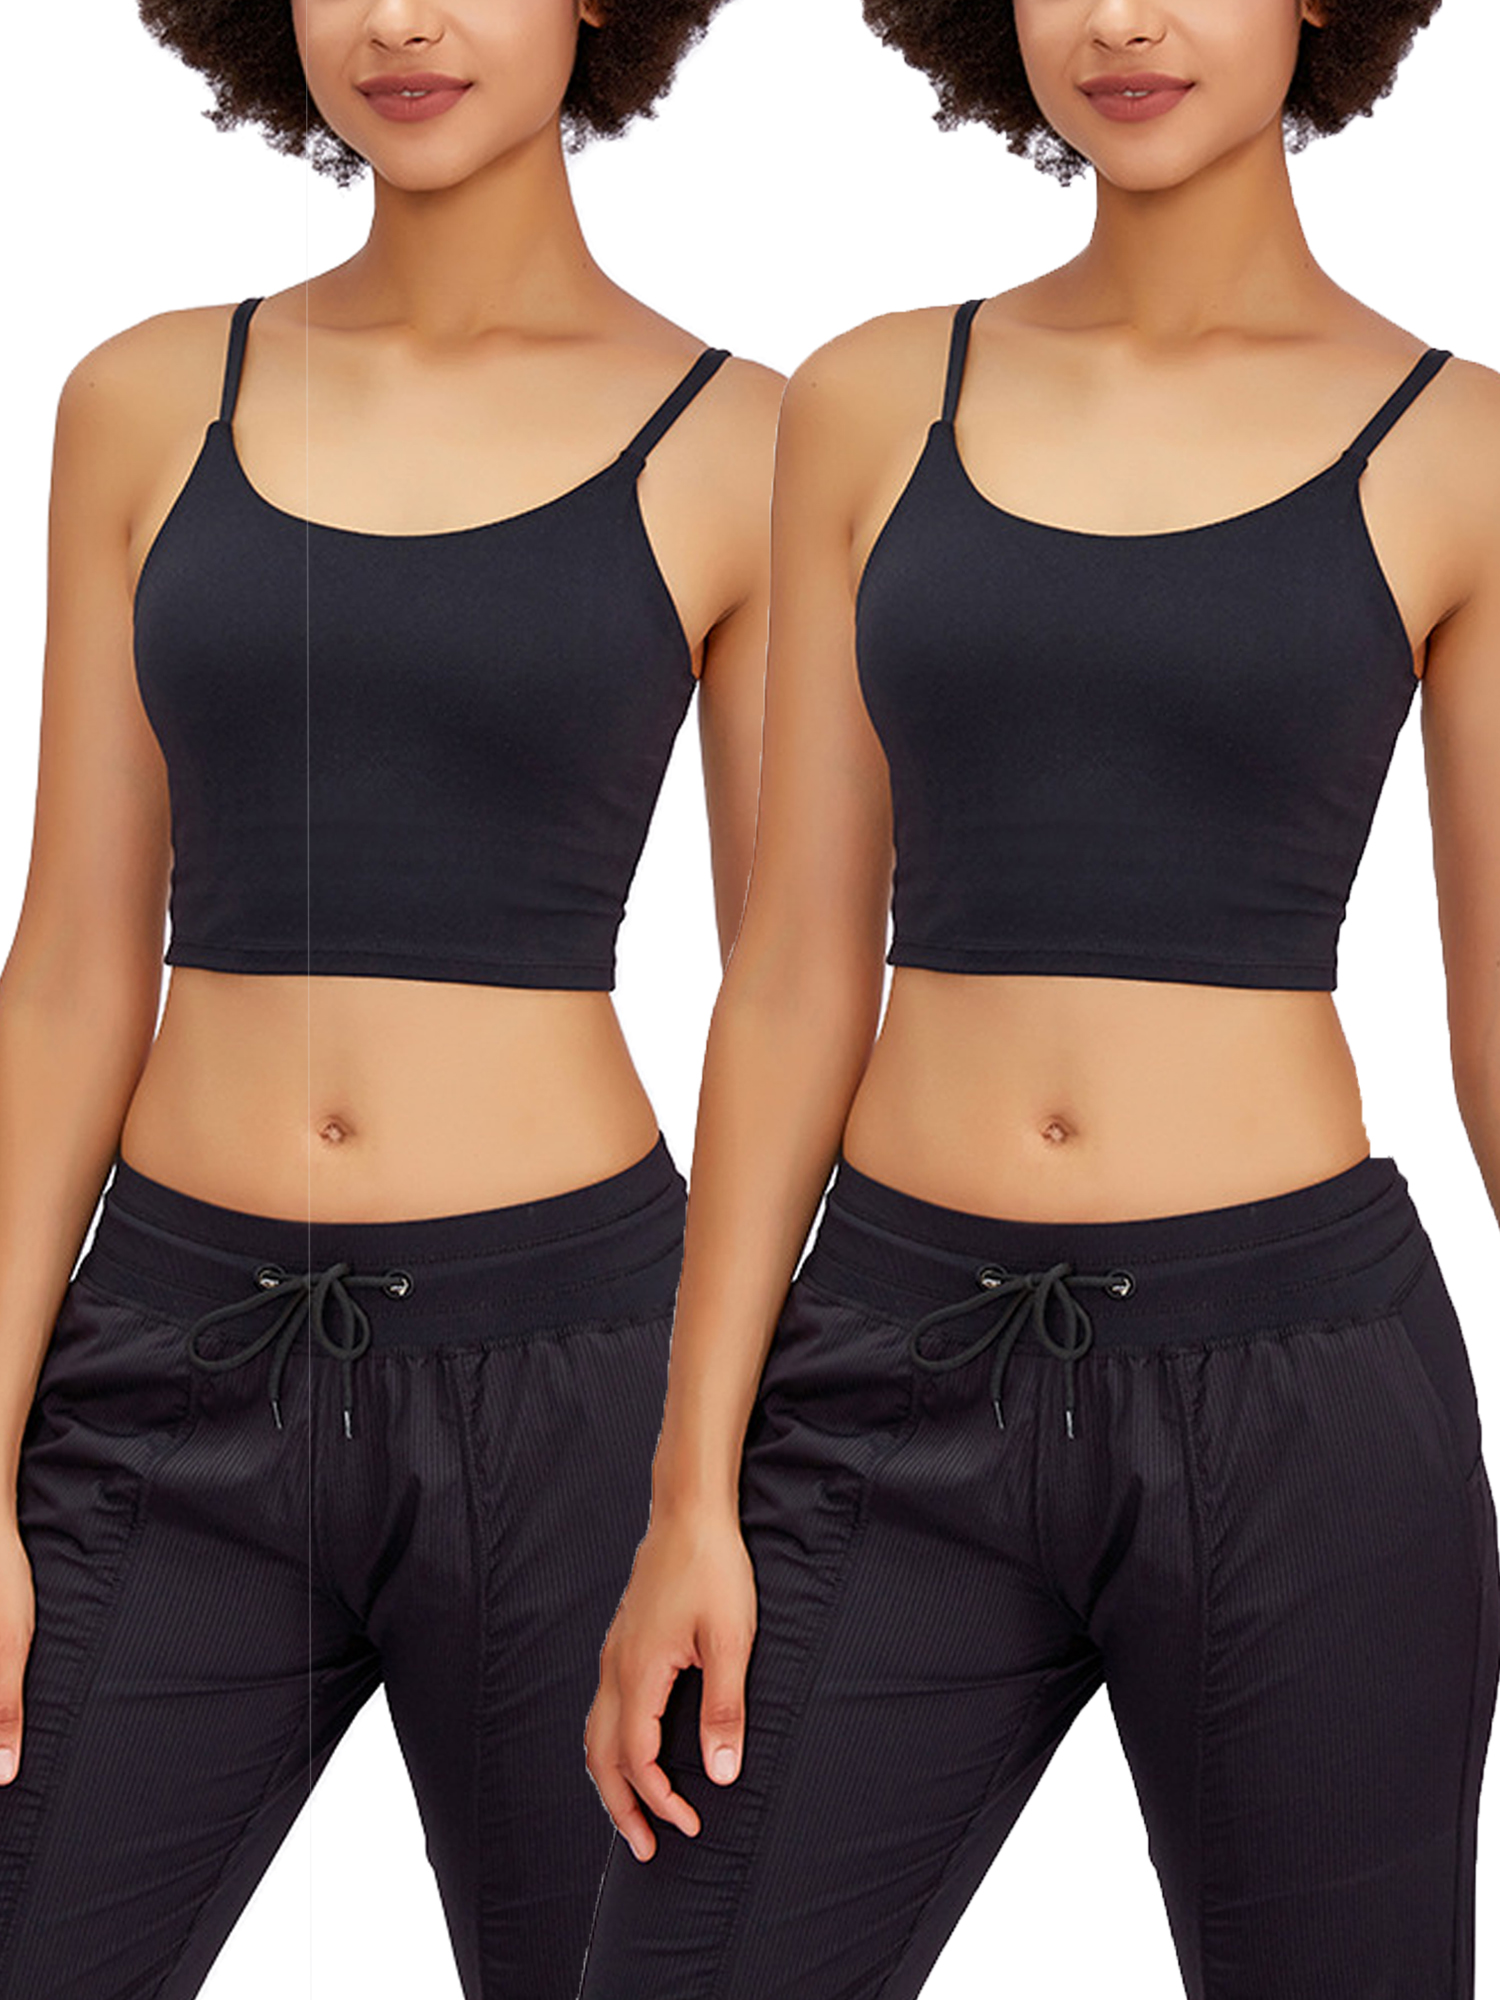 Details about  /Womens Wireless Seamless Sports Bra Yoga Gym Fitness Vest Fitness Support Top